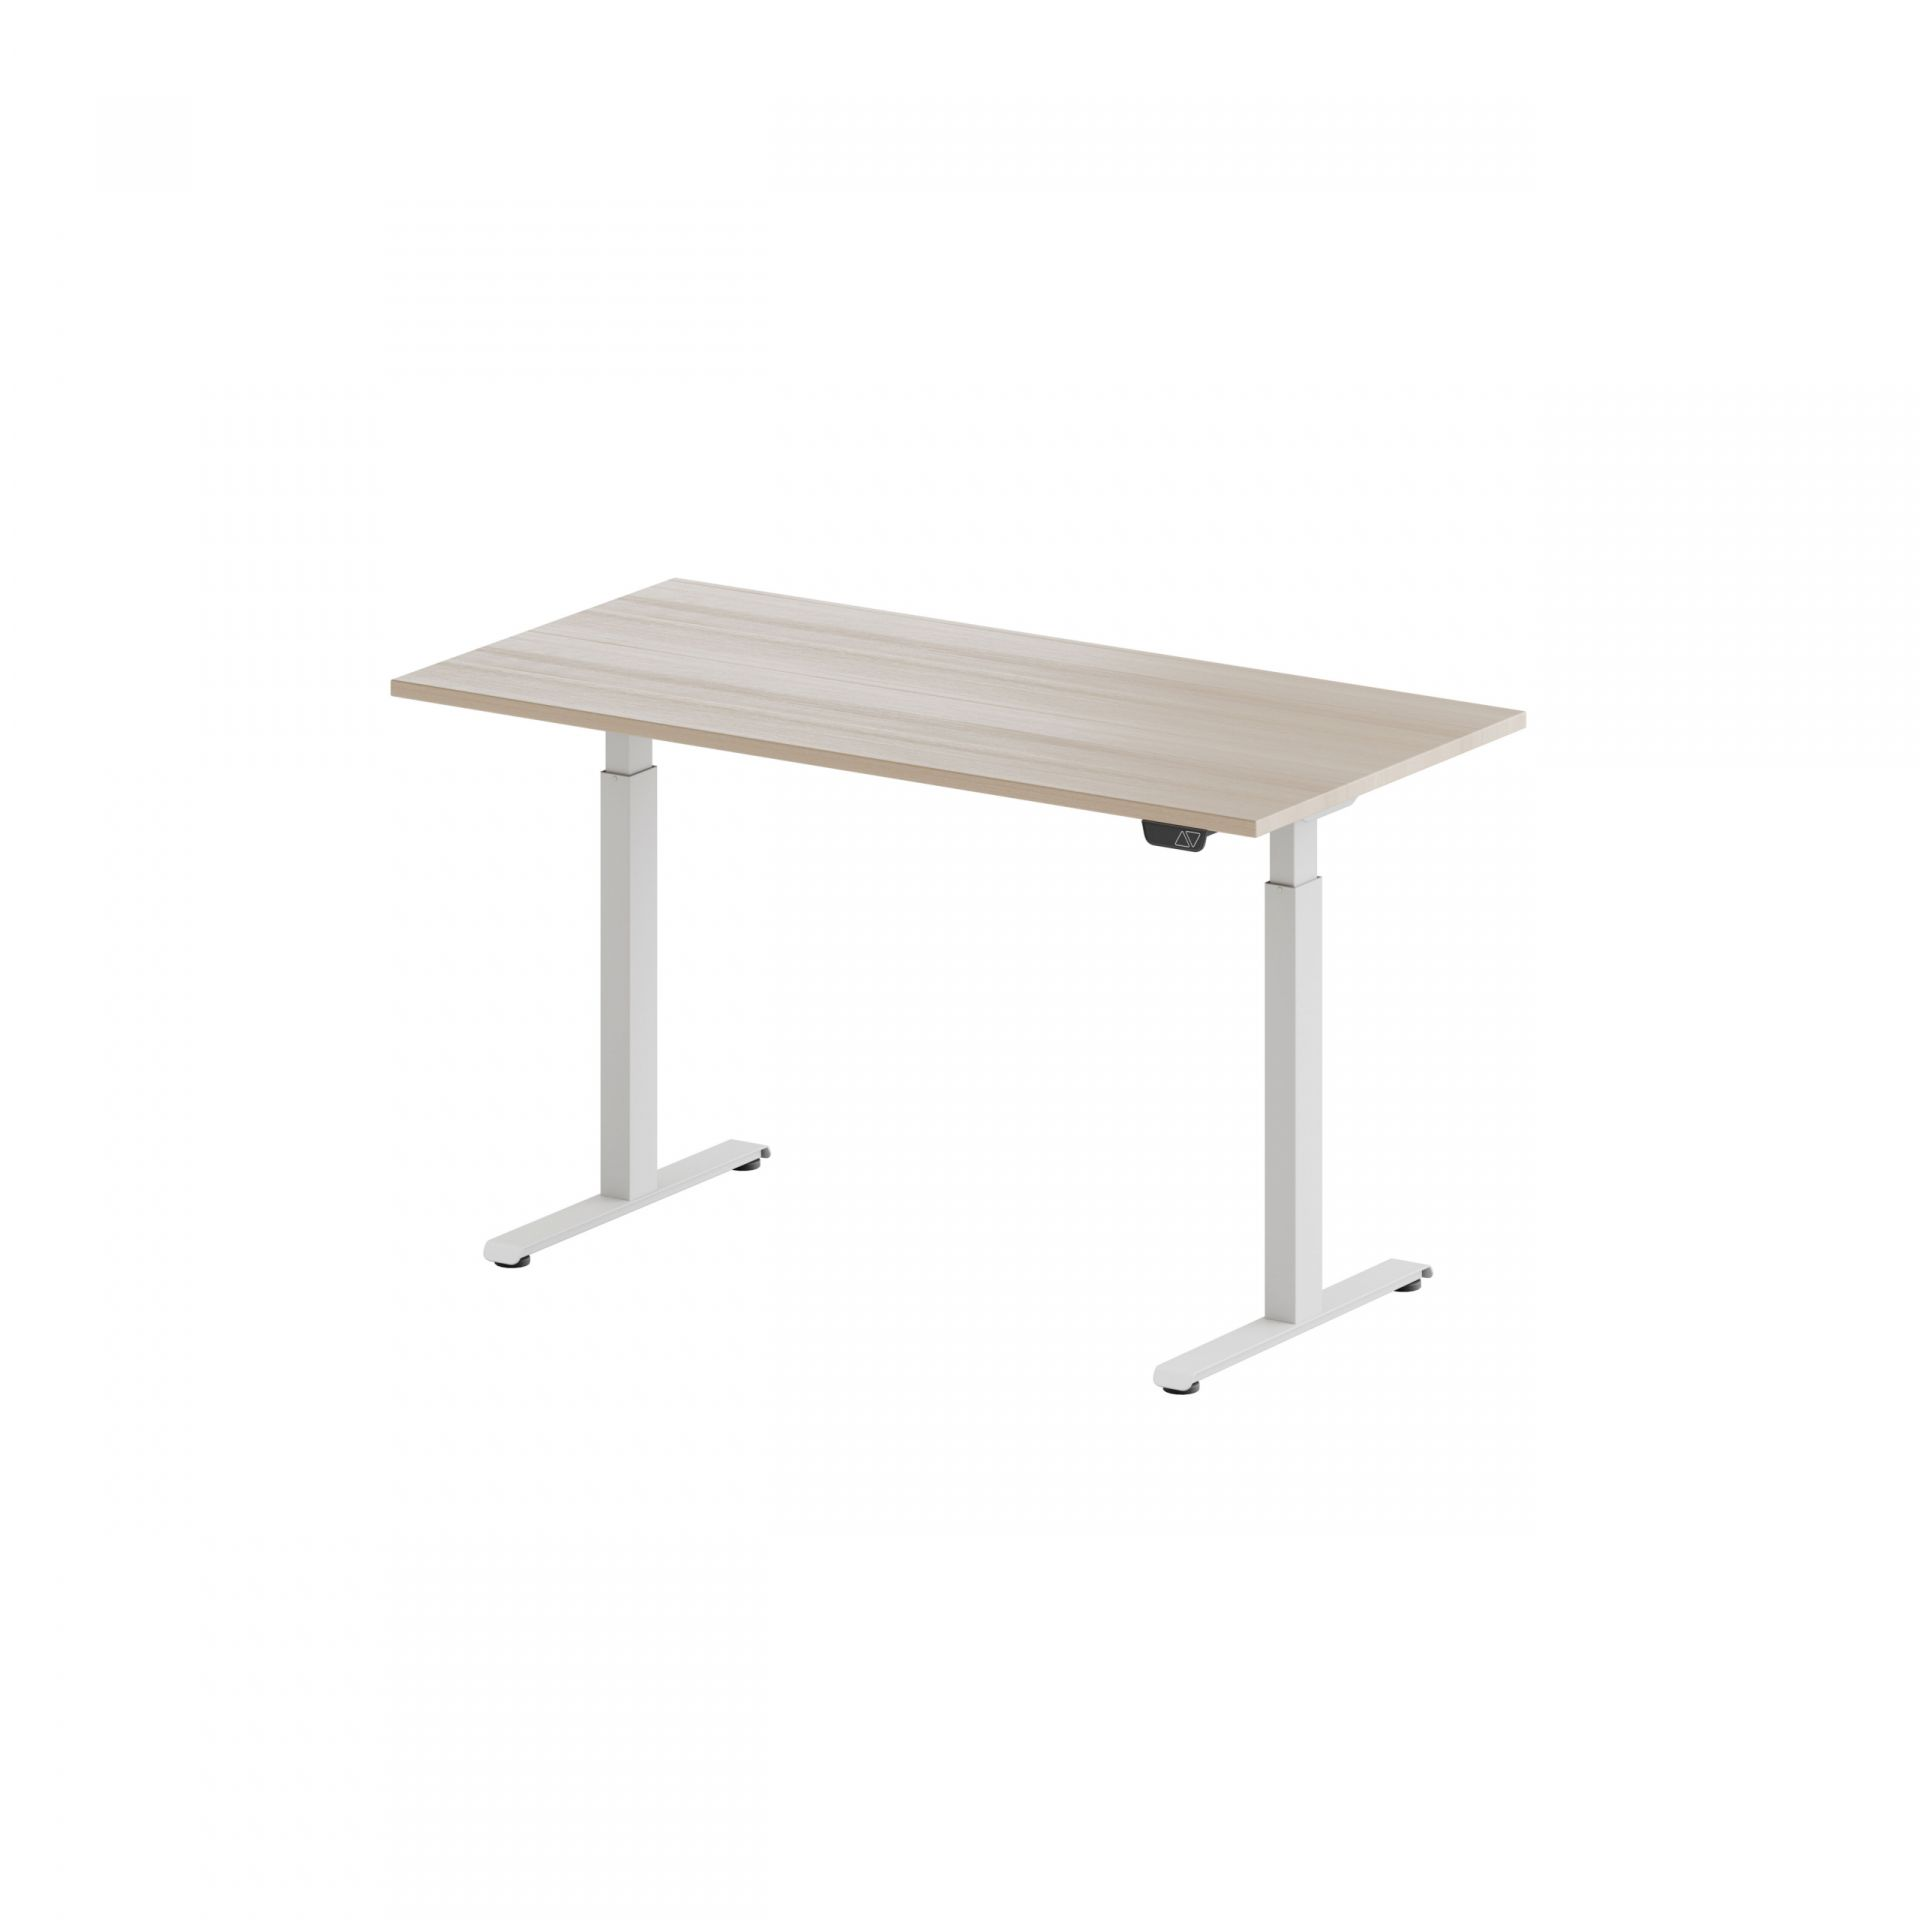 Neet Desk, sit/ stand